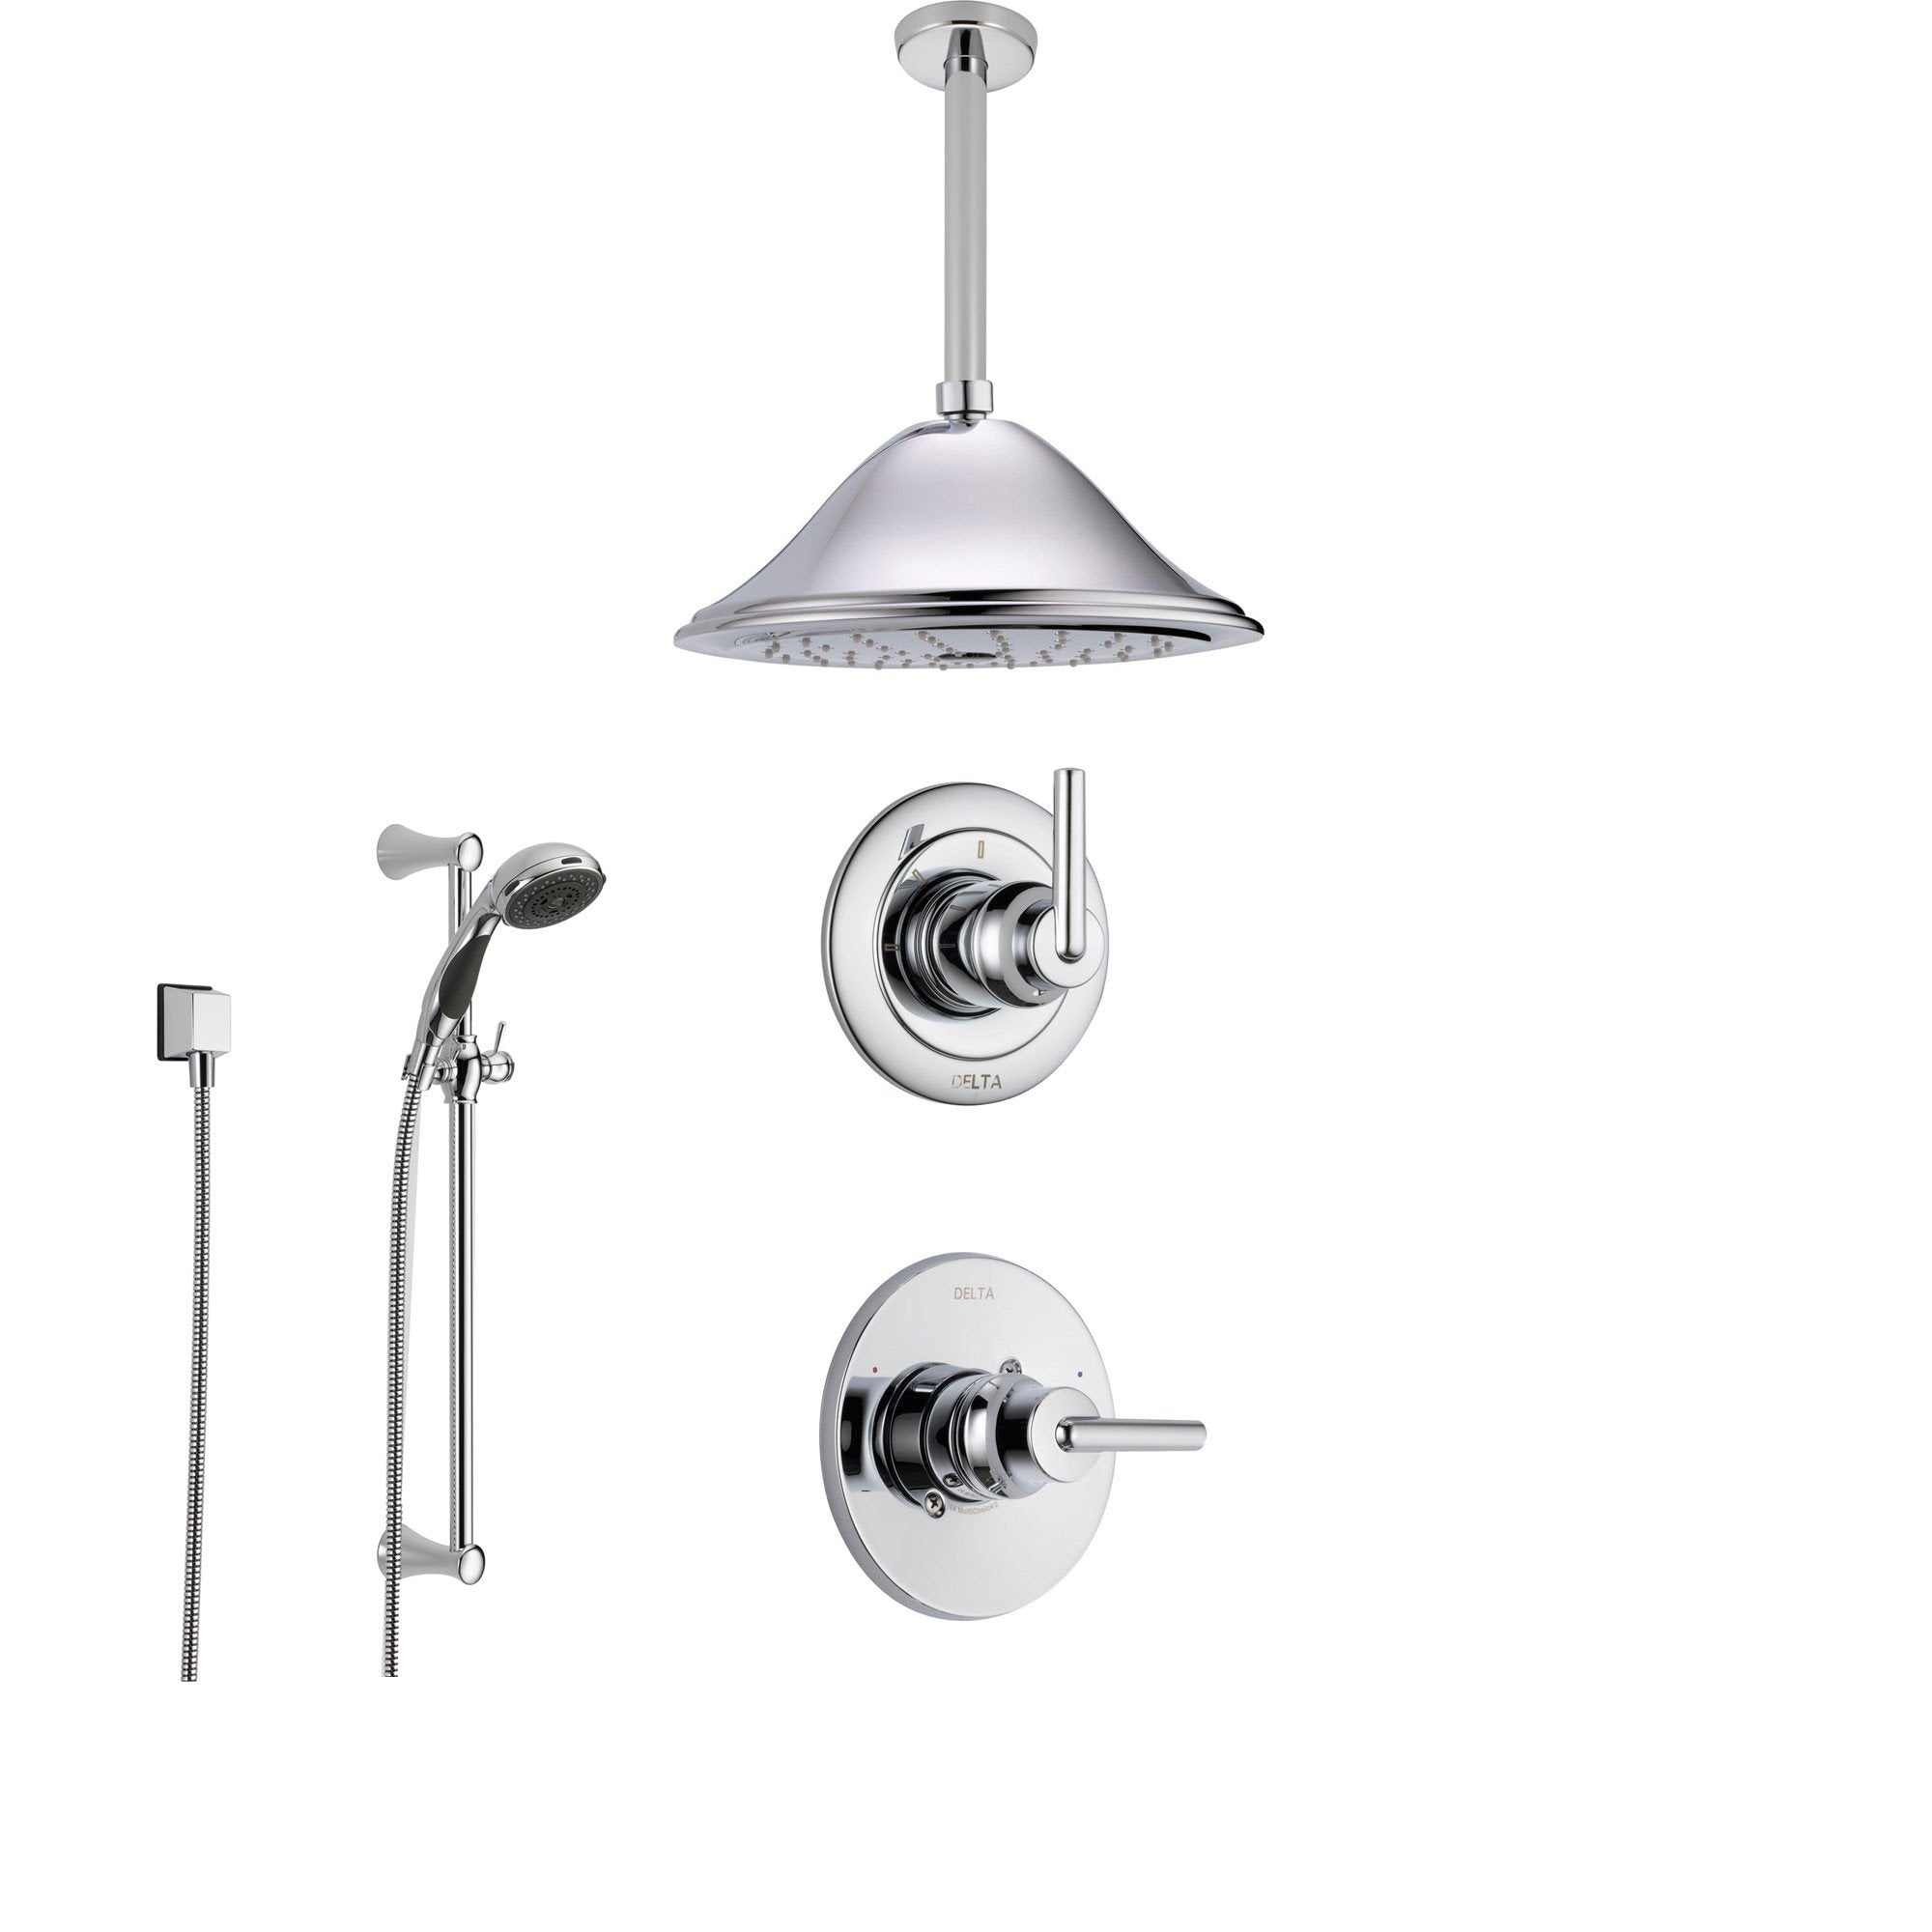 Delta Trinsic Chrome Shower System with Normal Shower Handle, 3-setting Diverter, Large Ceiling Mount Rain Showerhead, and Hand Shower SS145982